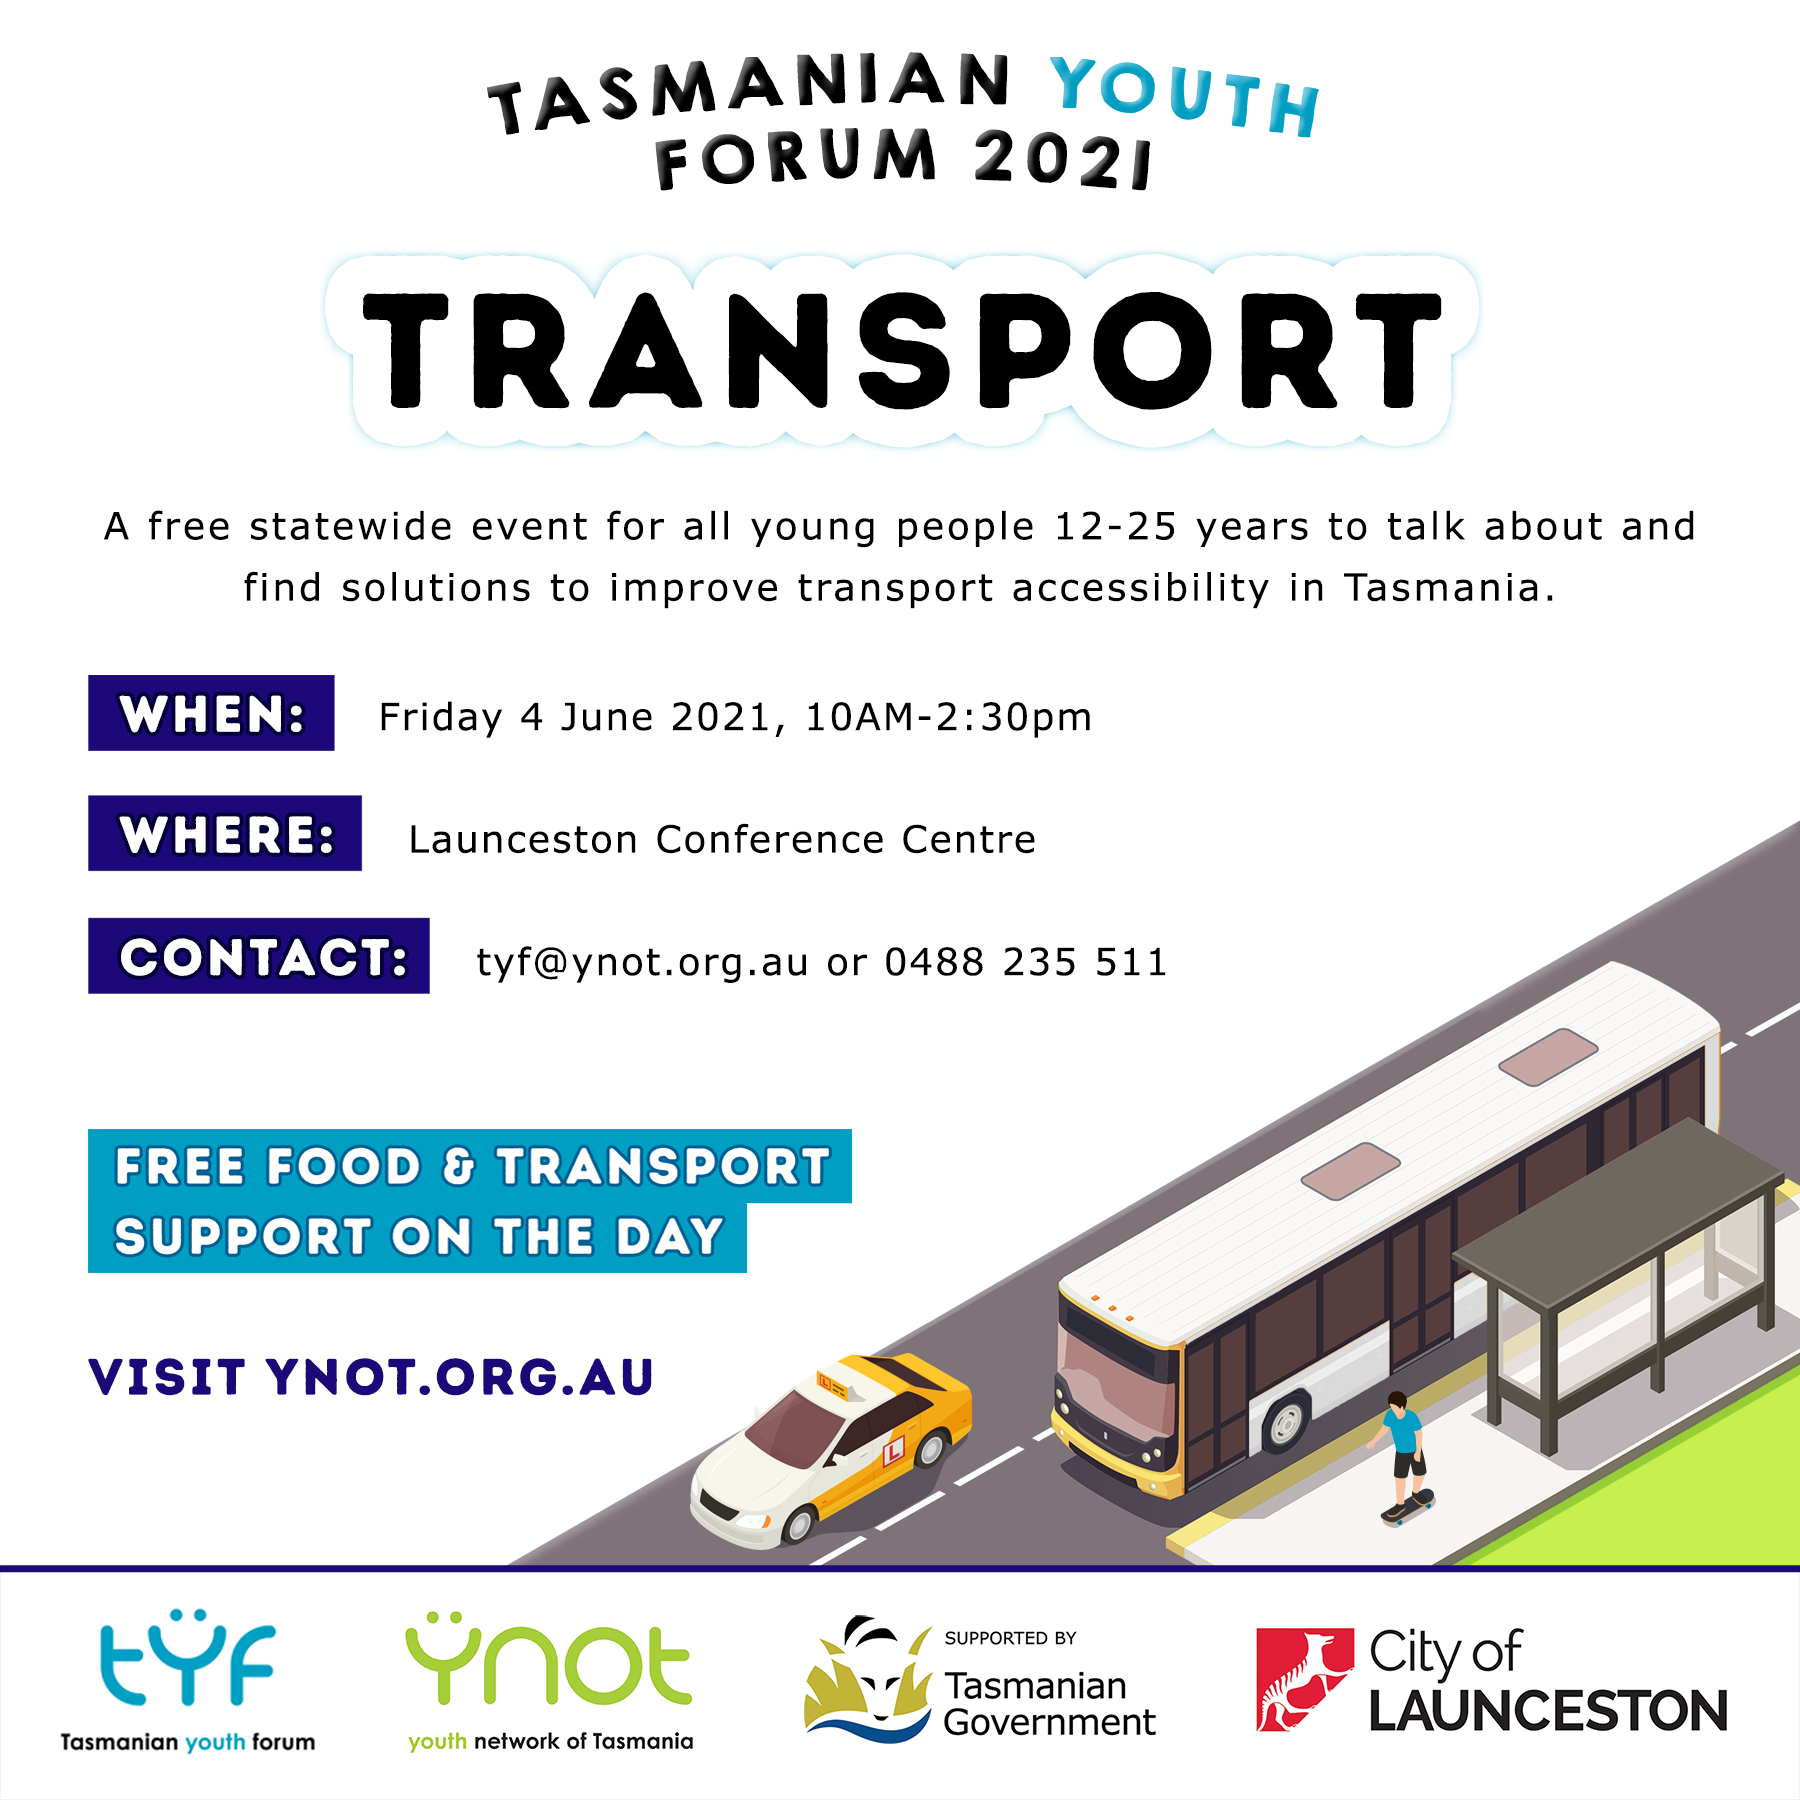 Tasmanian Youth Forum 2021